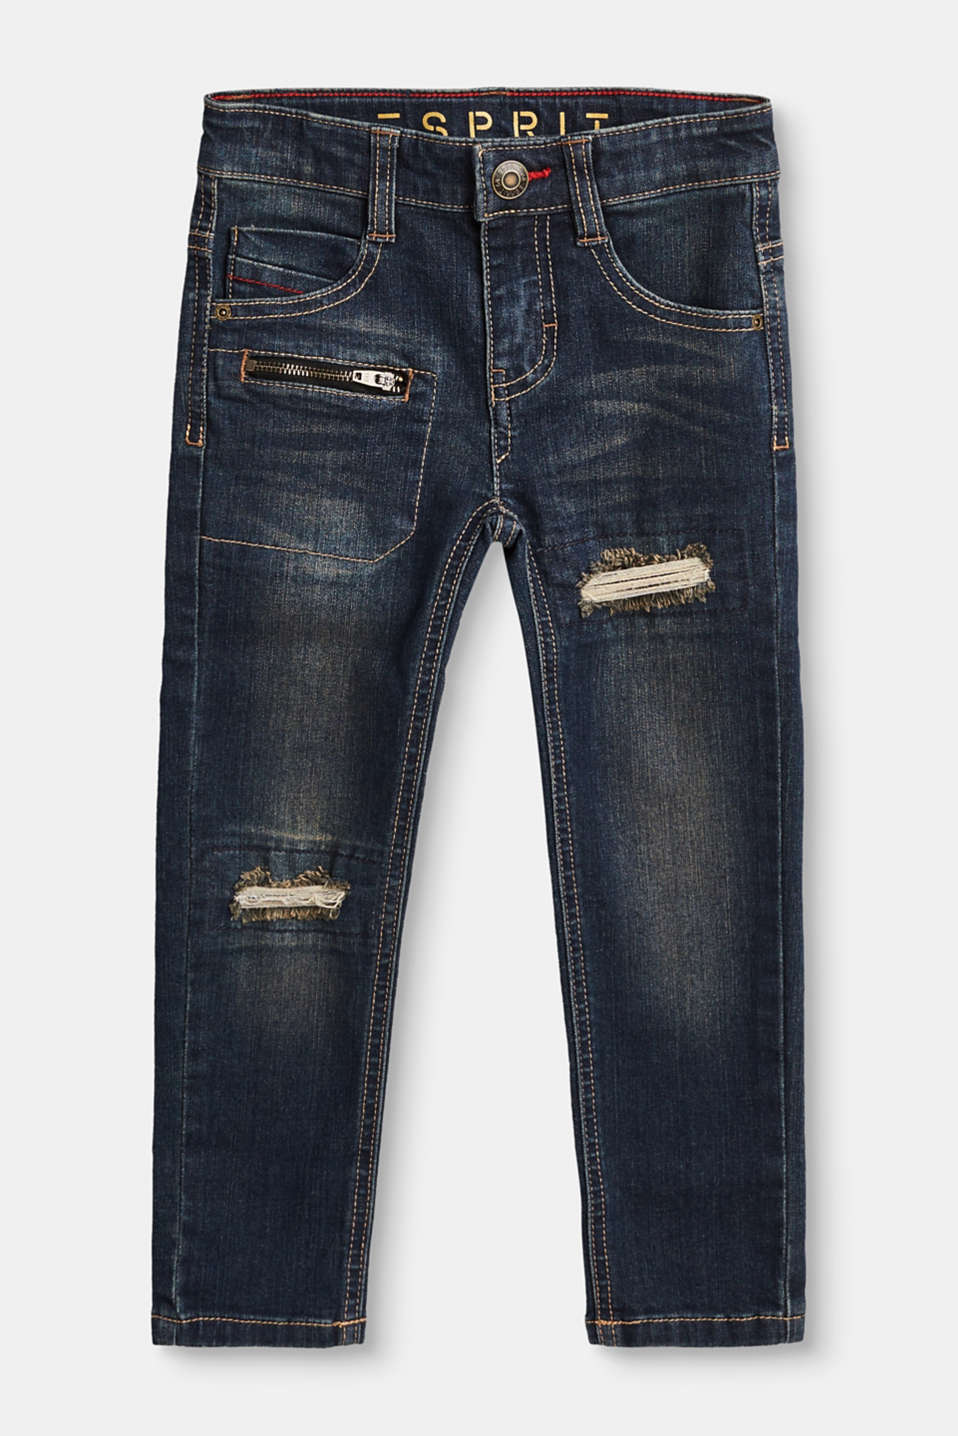 Esprit - Destroyed Stretch-Jeans mit Dirty-Effekt